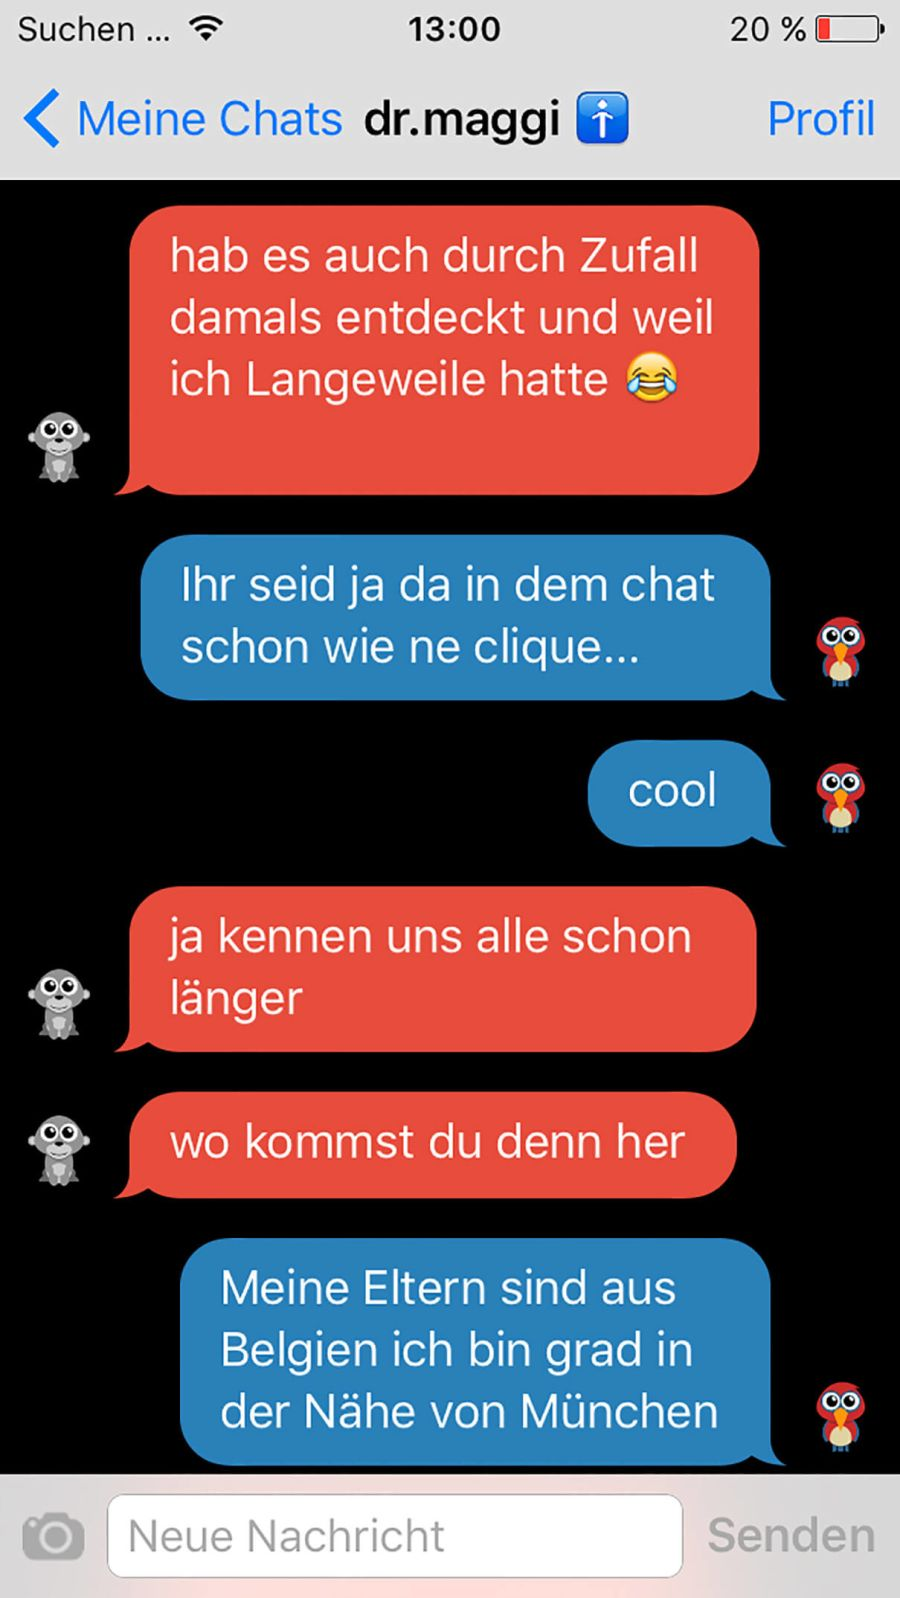 Antichat Privatchat